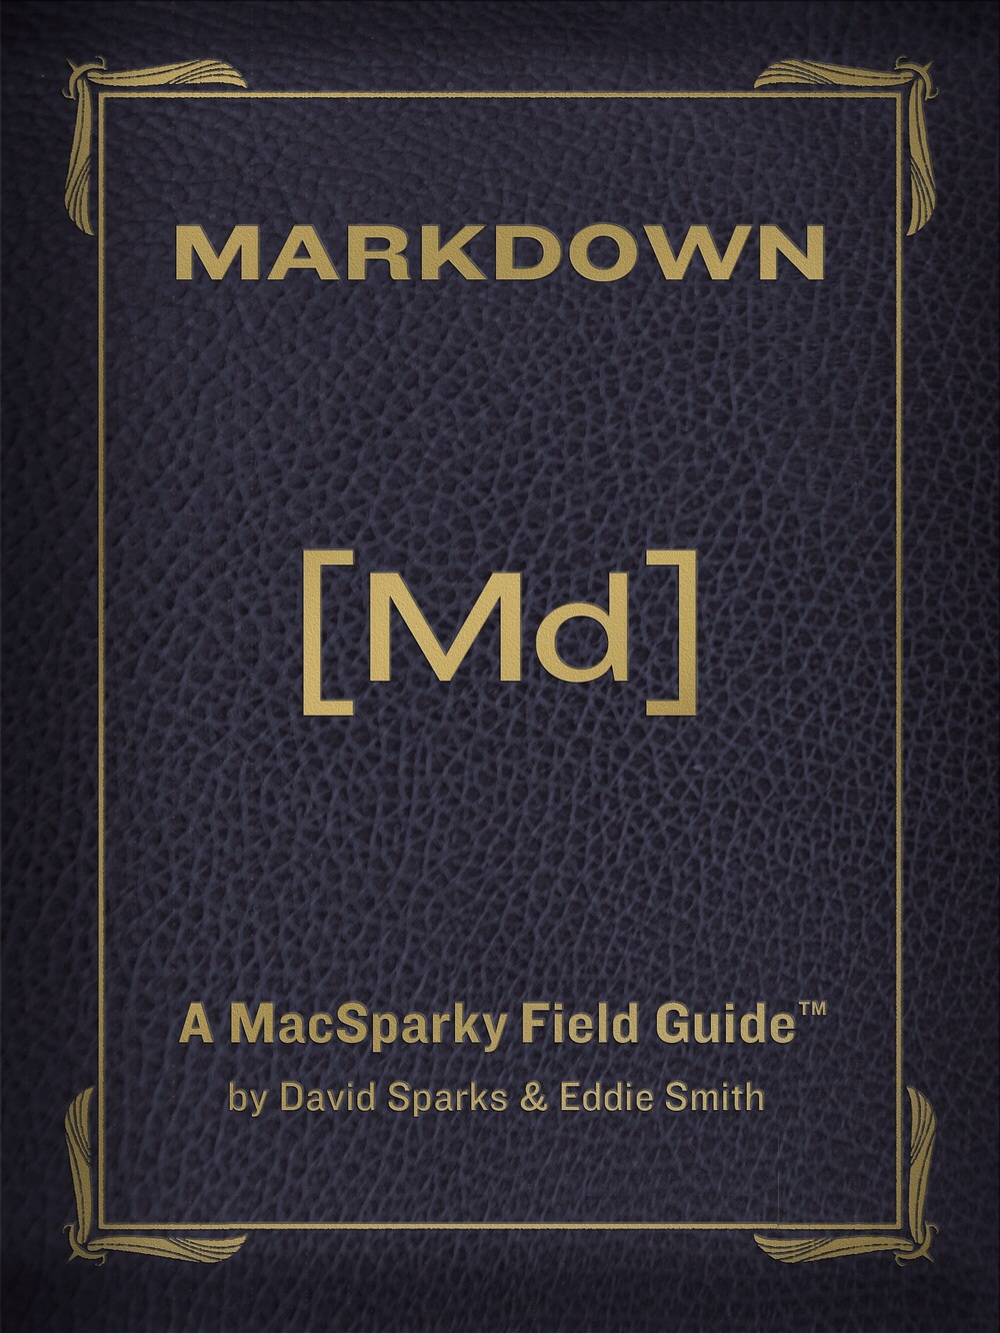 Book Cover for David Sparks's Field Guide: Markdown.